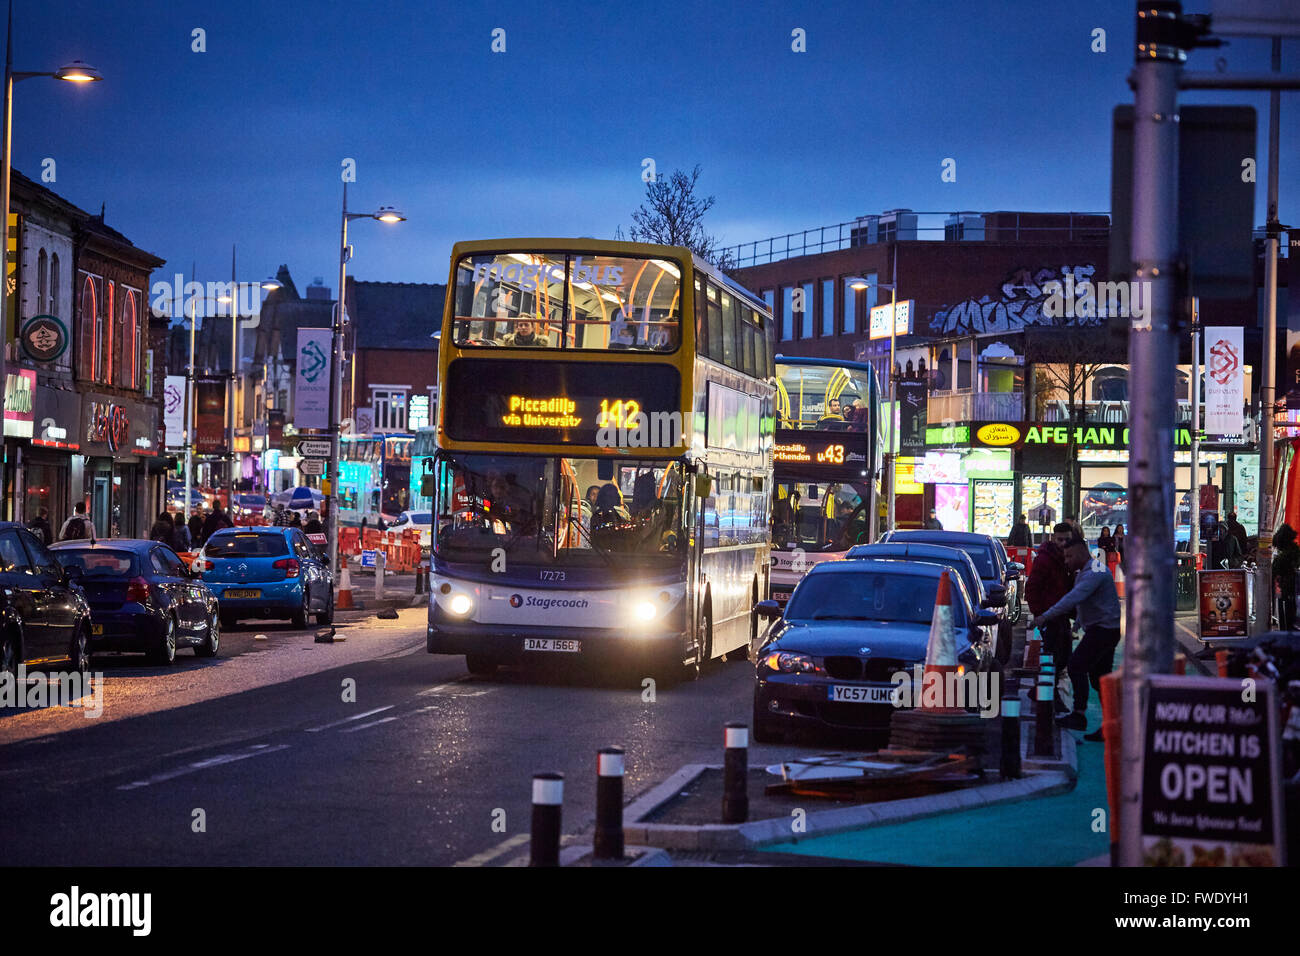 Rusholme curry mile willows road   Night dark evening 142 43 Stagecoach bus busy parked cars restaurants Restaurant Stock Photo